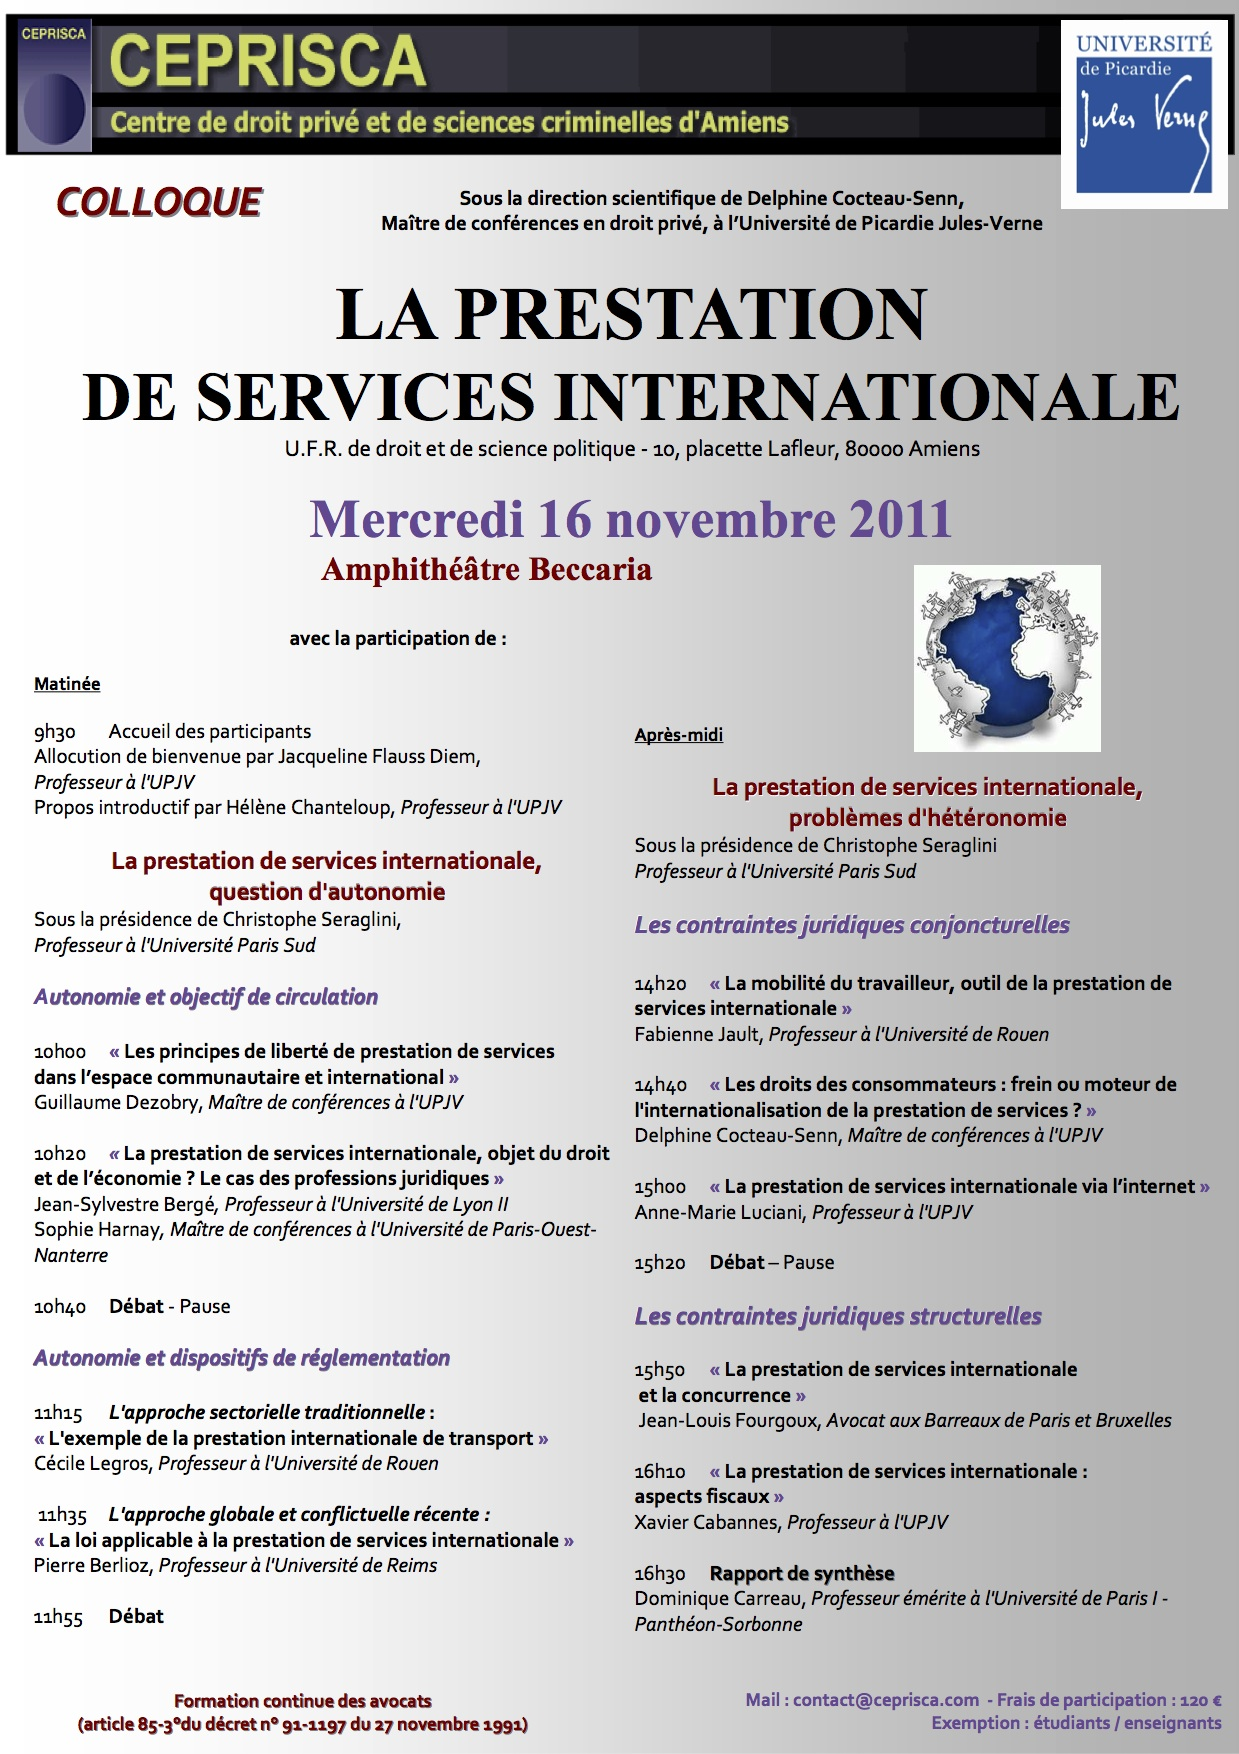 CEPRISCA-_La_Prestation_de_Services_internationale-16_novembre_2011